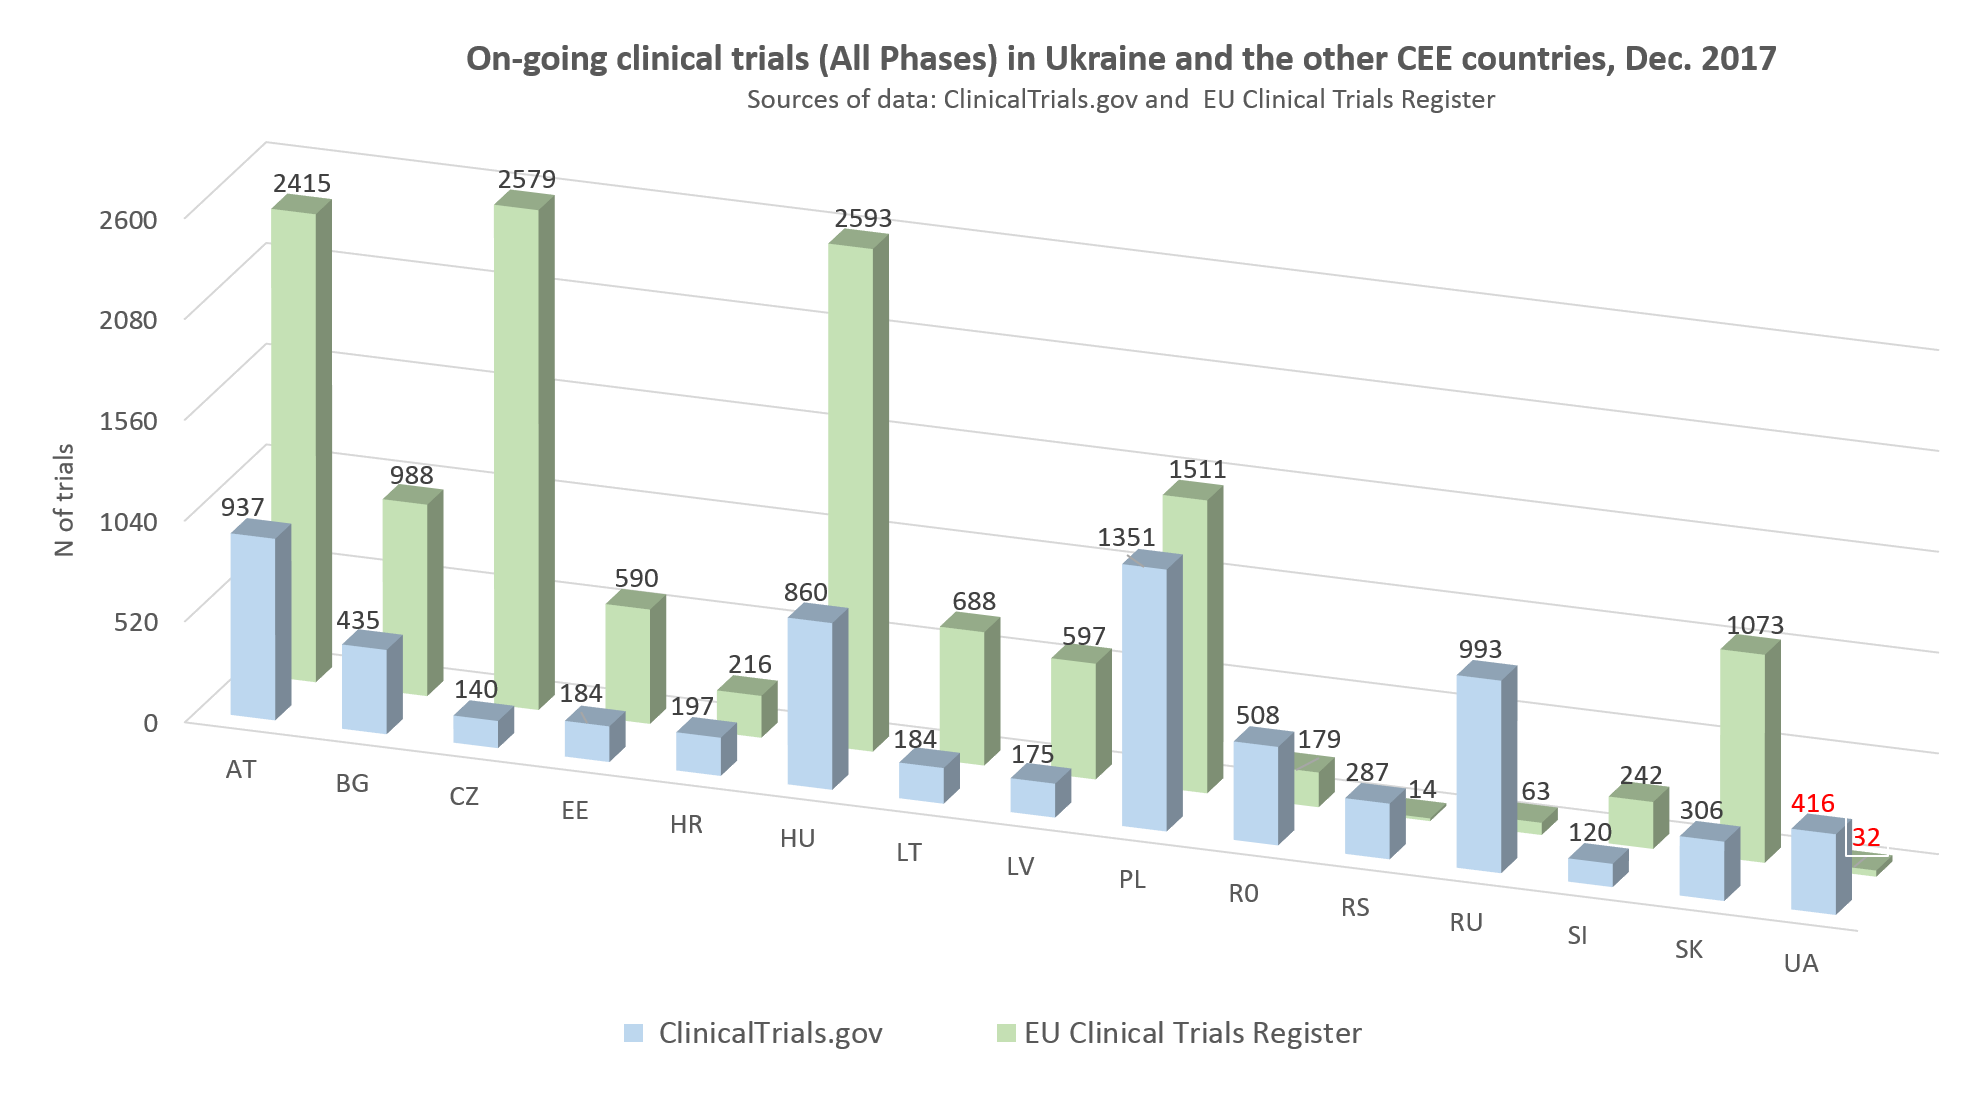 On-going clinical trials of all phases in Ukraine and other CEE countries, December 2017